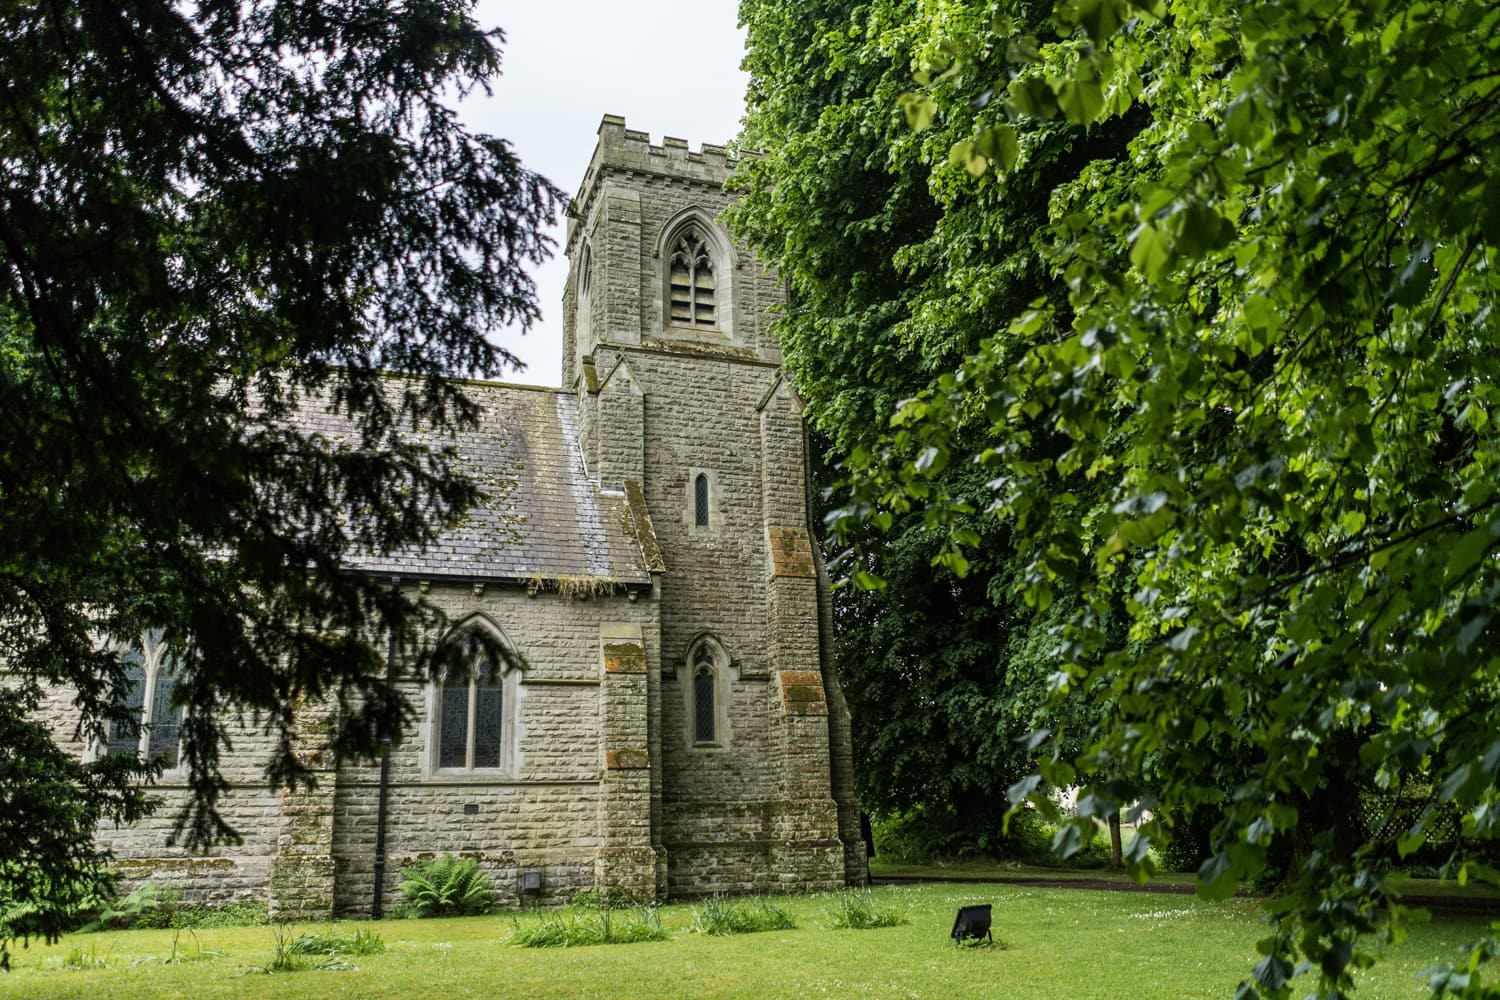 St David's Church in Miskin, South Wales